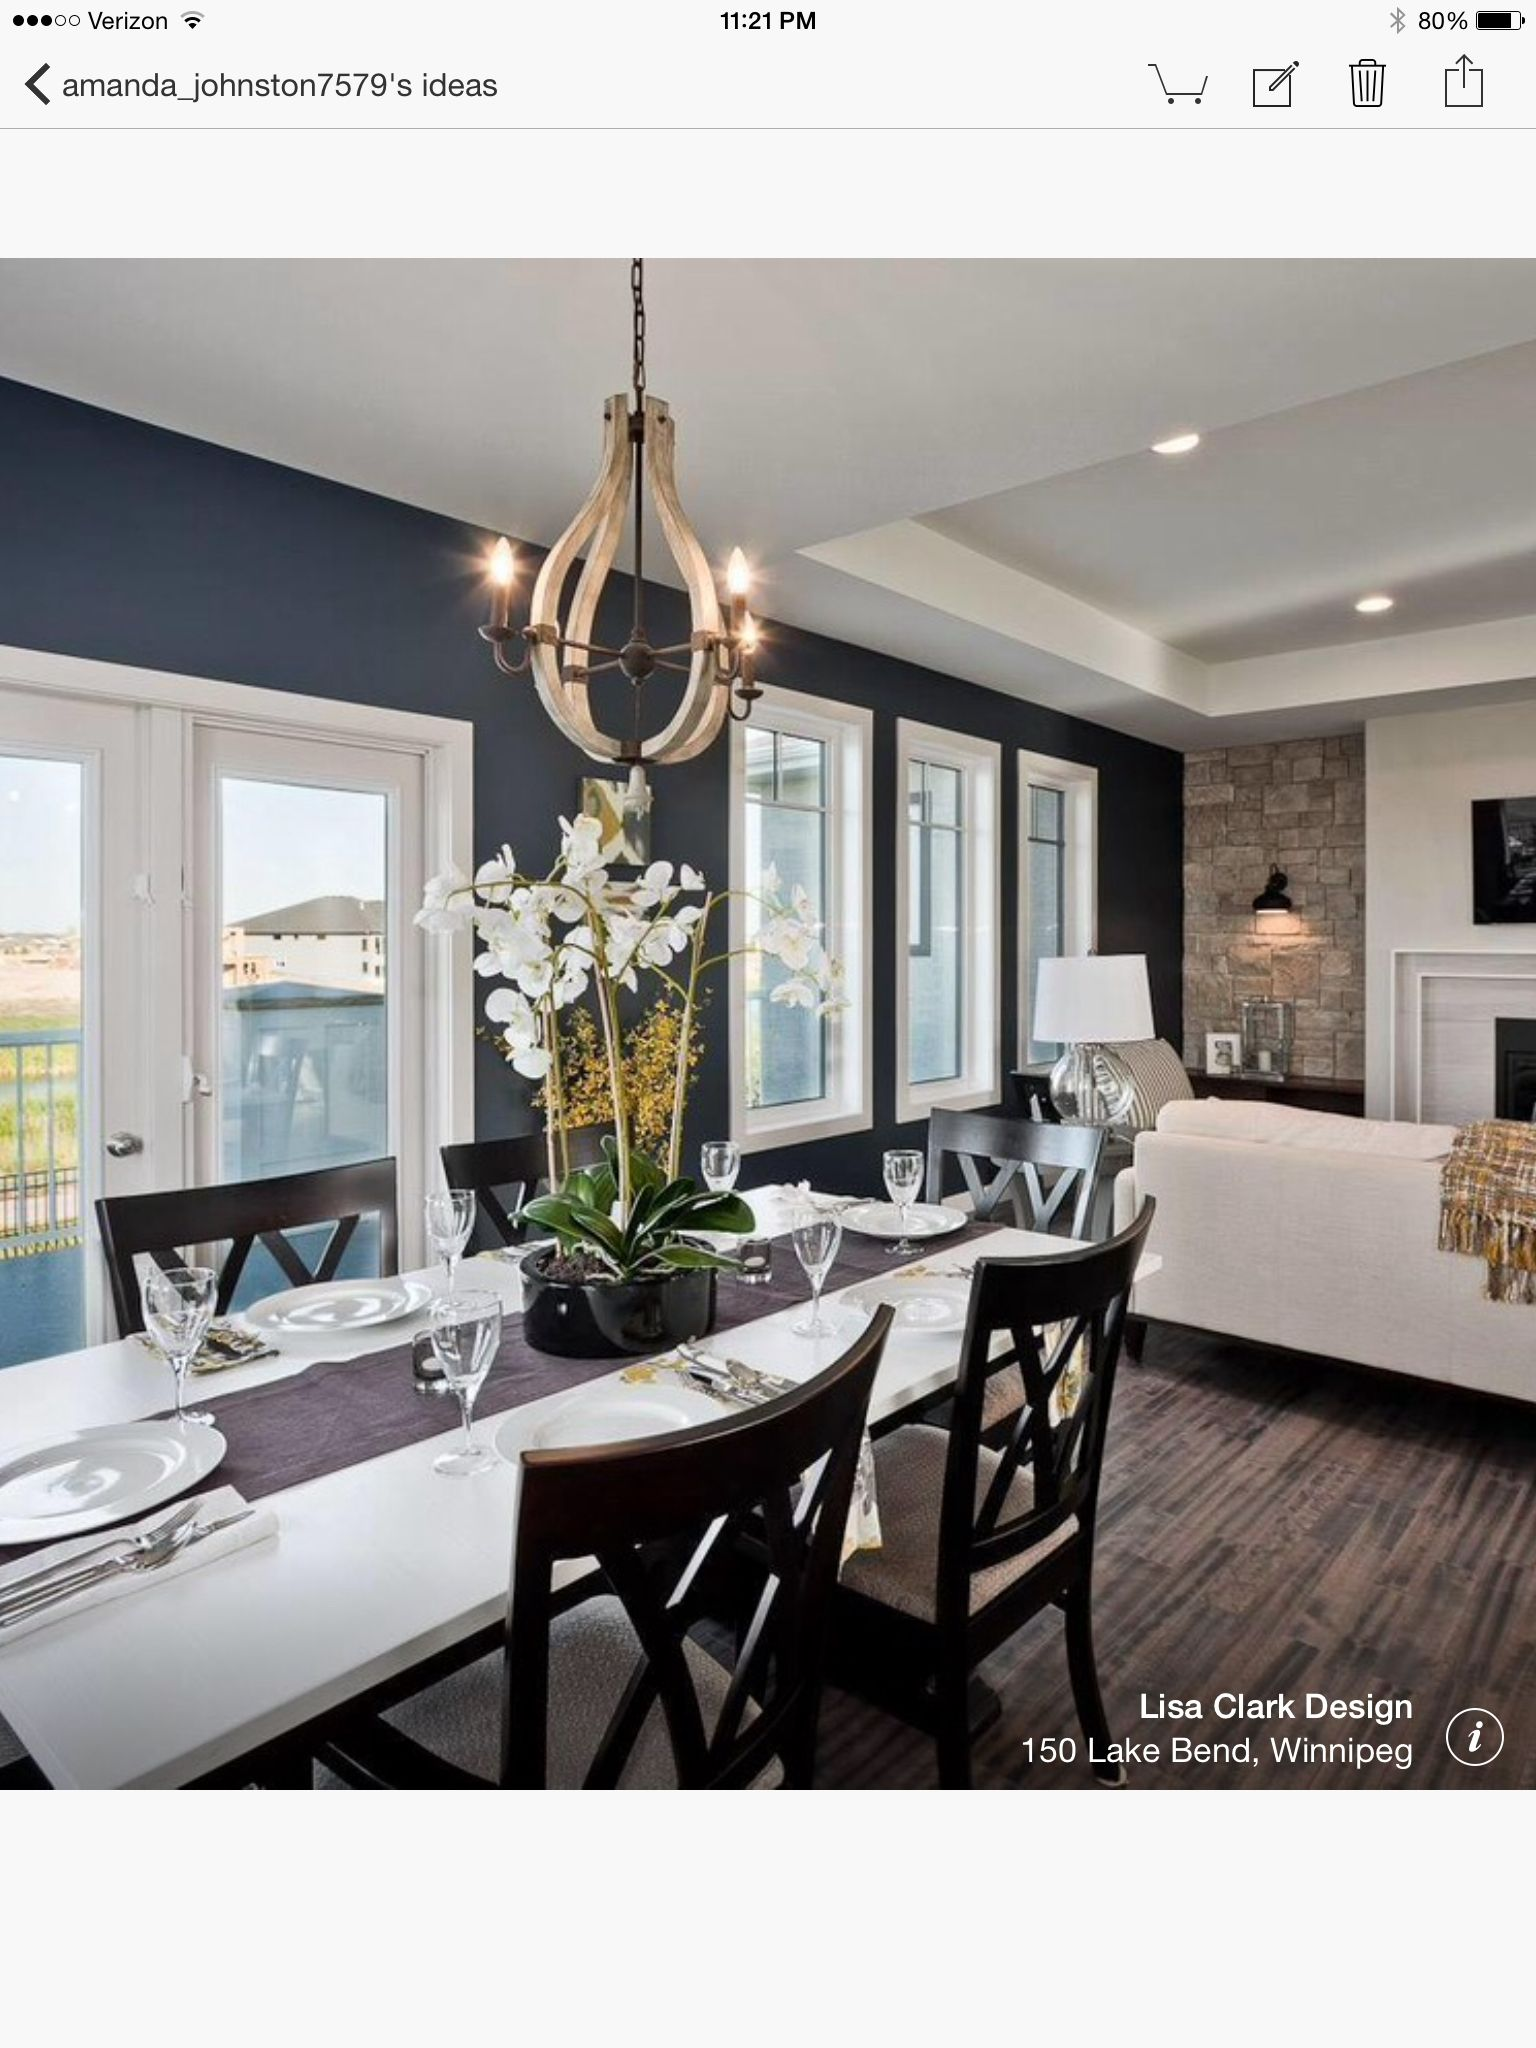 Navy hale Benjamin Moore  Living room in 2019  Home Decor Accent walls in living room Hale navy